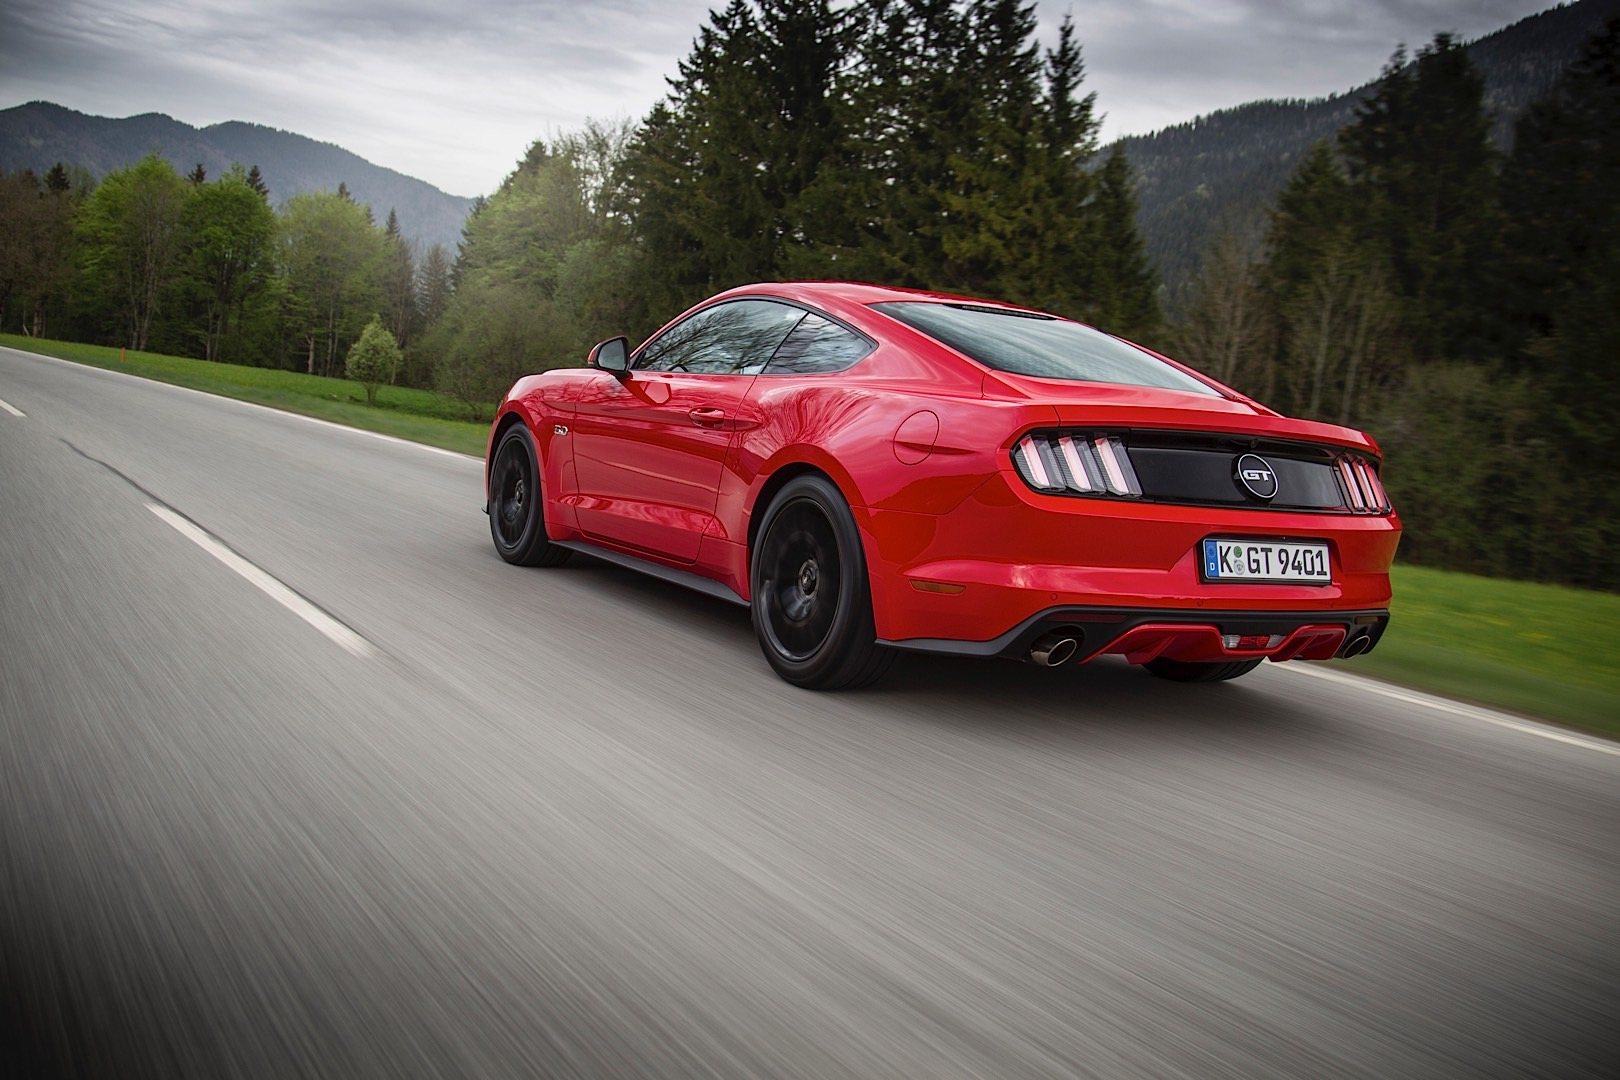 2015 ford mustang hd wallpapers: riding the wind of change